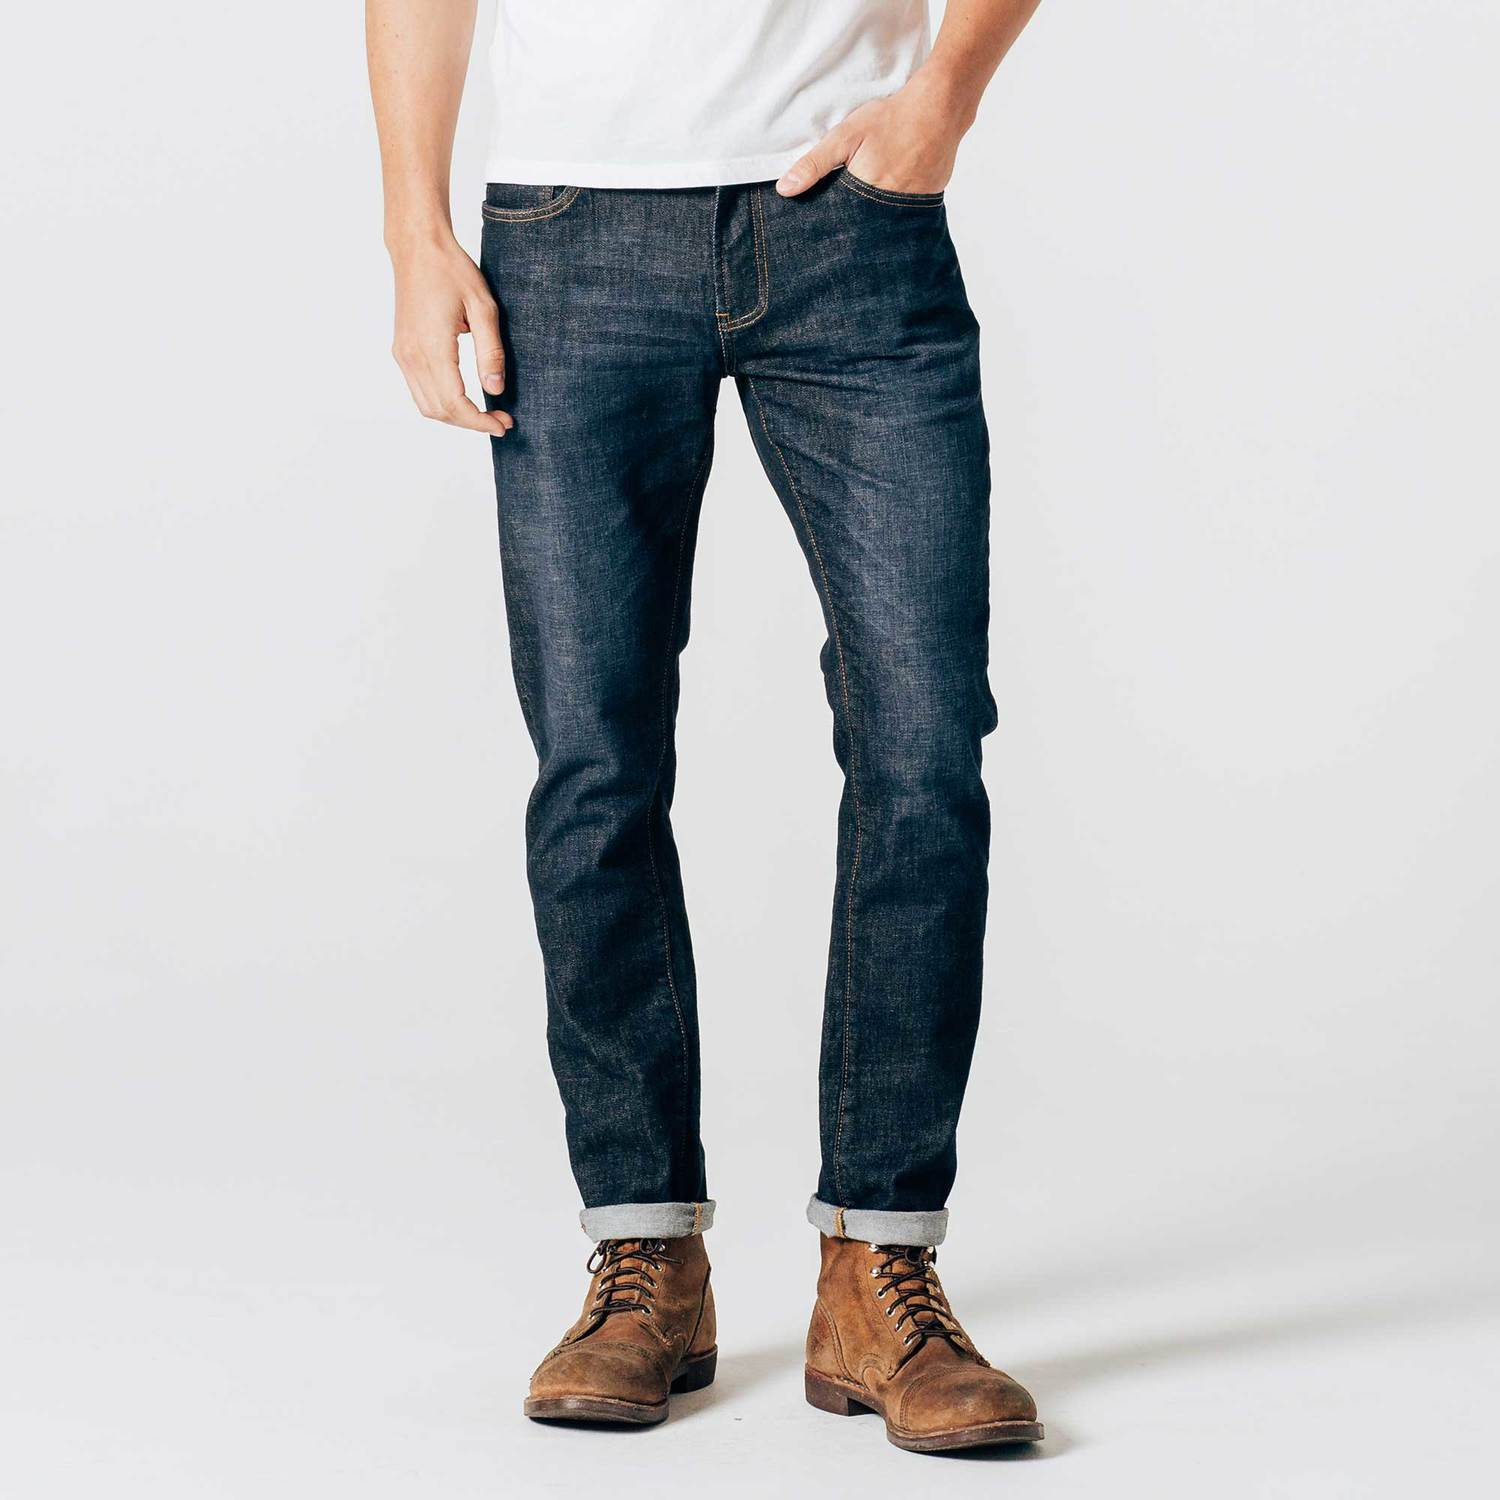 Mens Skinny-Slim Jeans in Six-Month Dark Worn